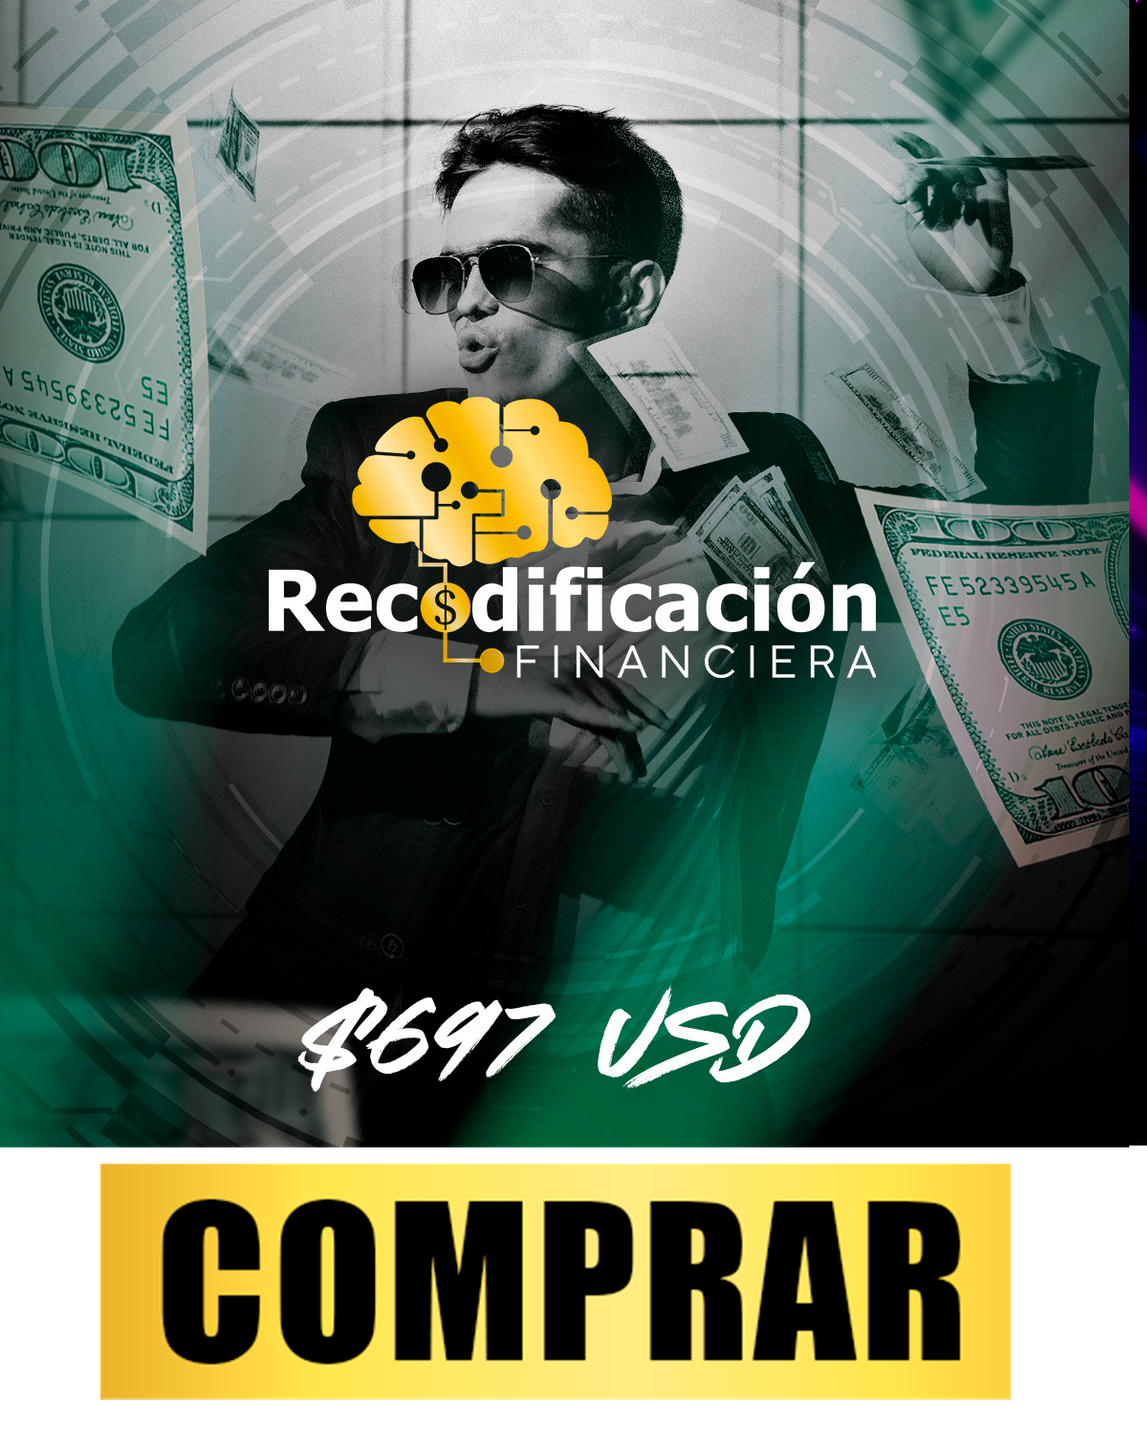 Recodificación Financiera